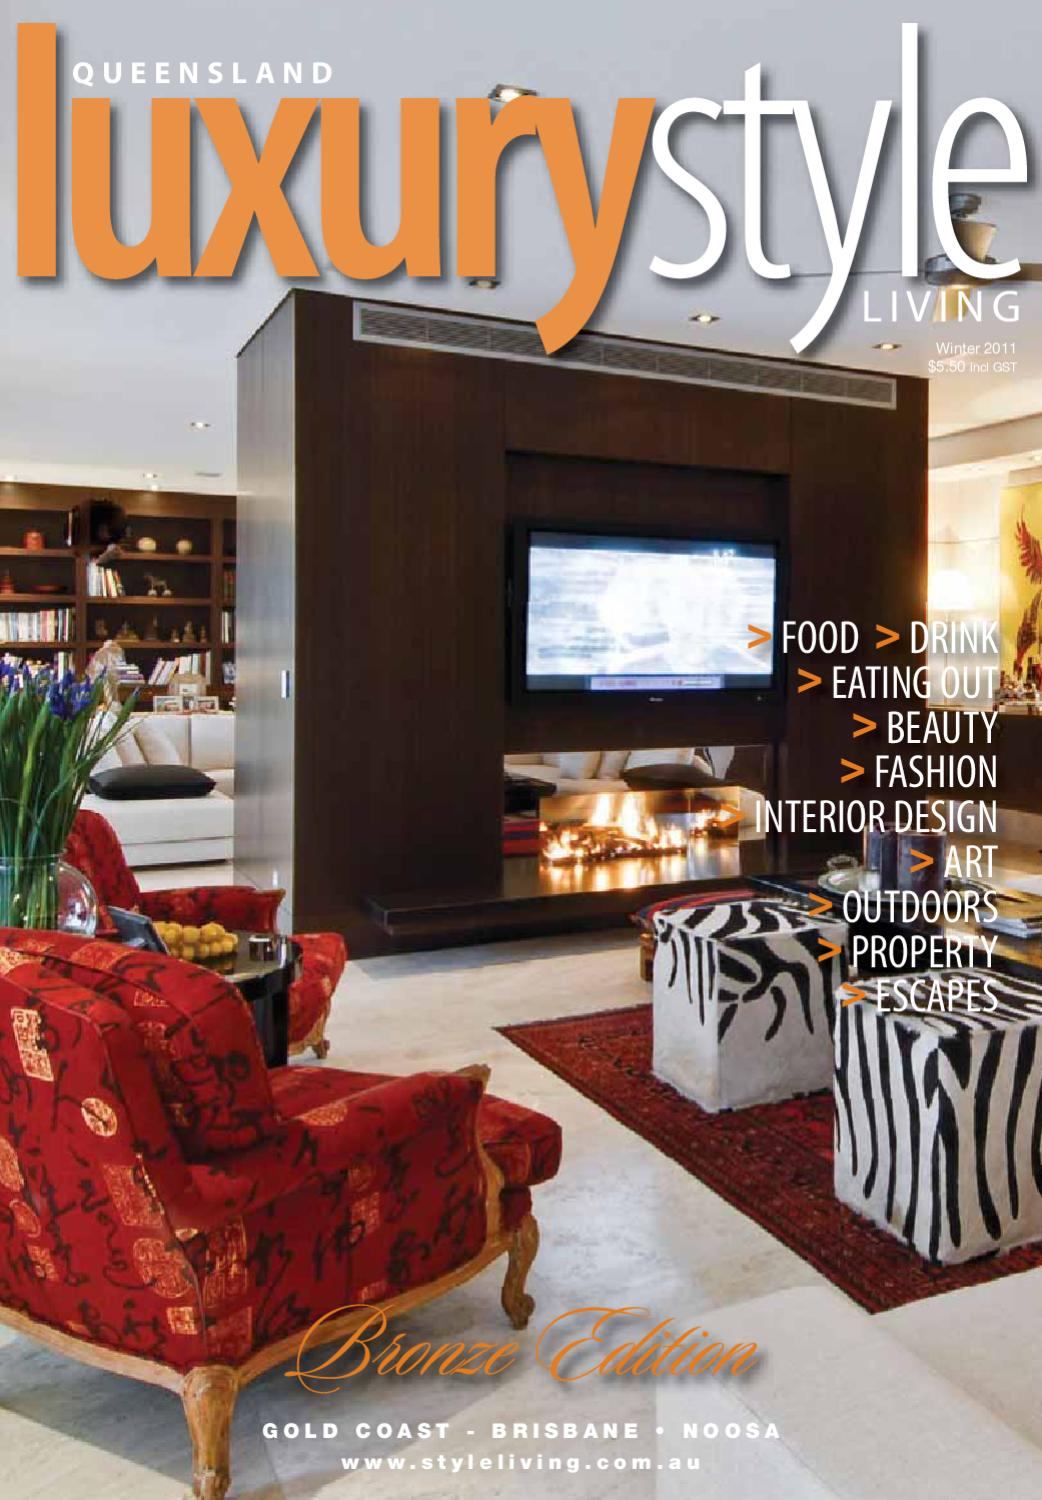 Cucina Restaurant Southbank Brisbane Luxury Style Winter 2011 By Style Living Issuu